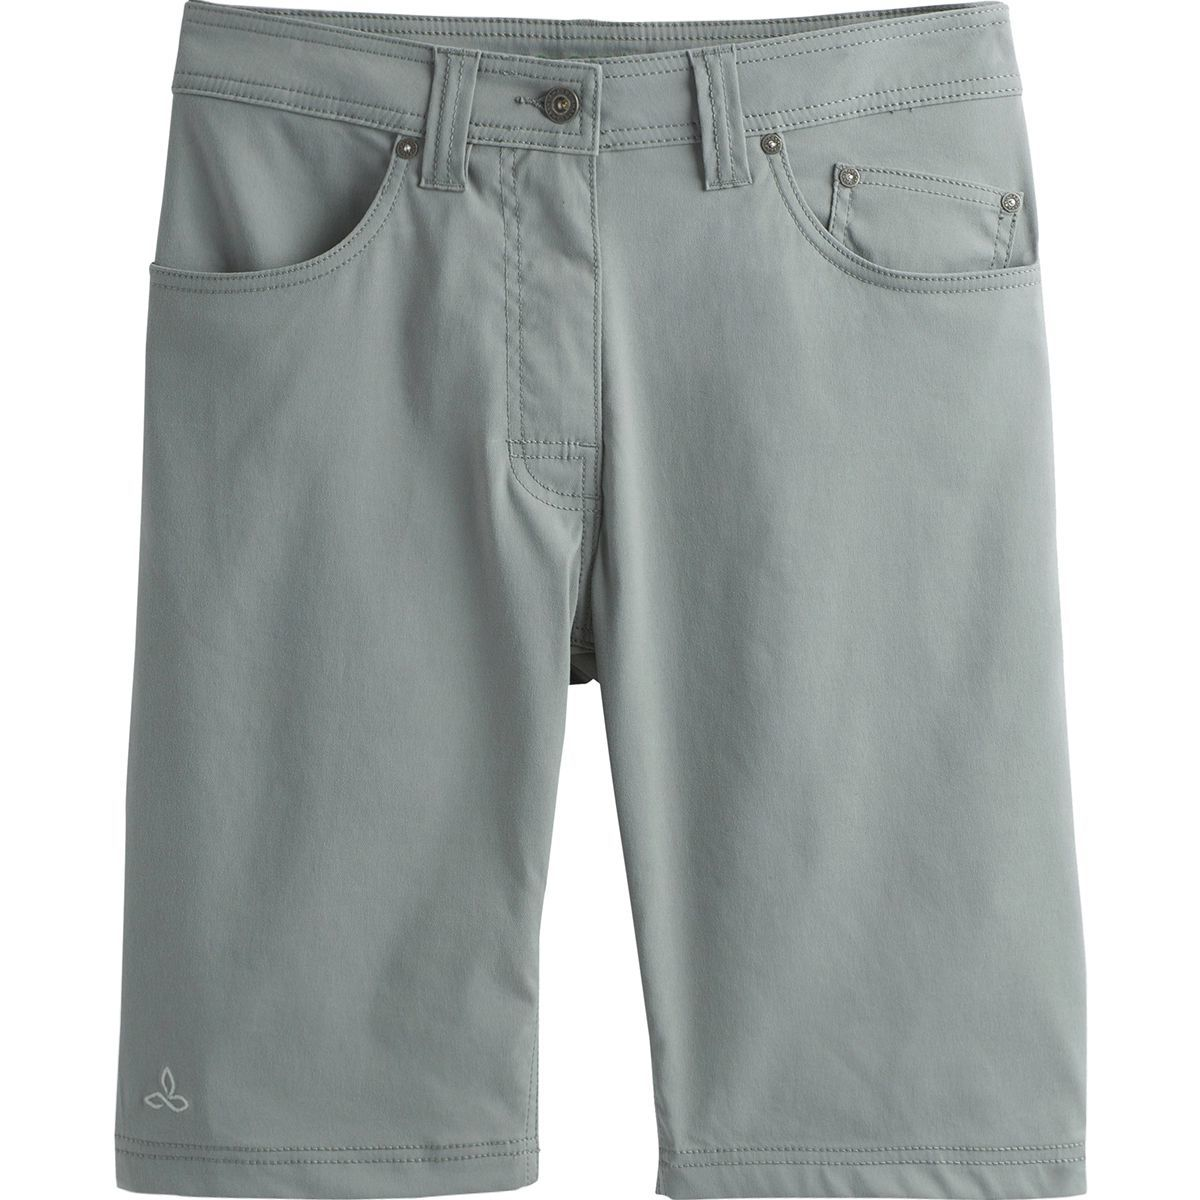 Prana Brion Short - Men's